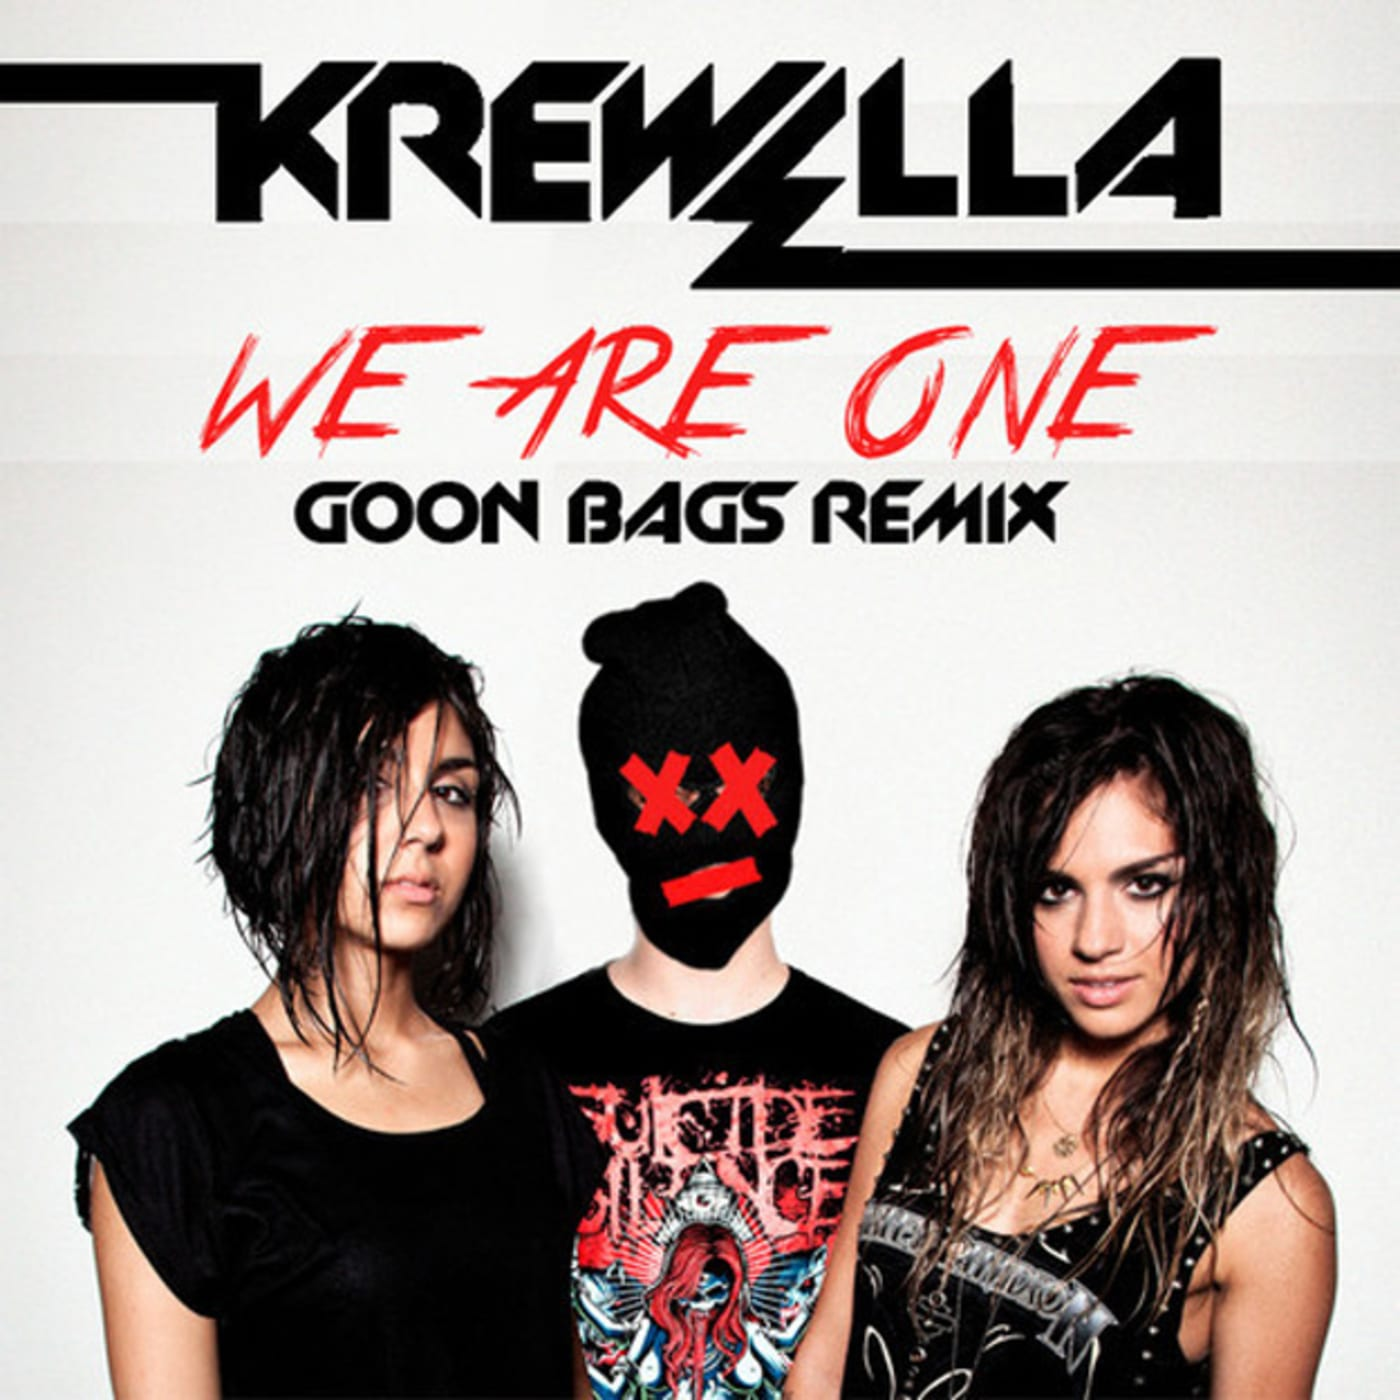 krewella we are one goon bags remix